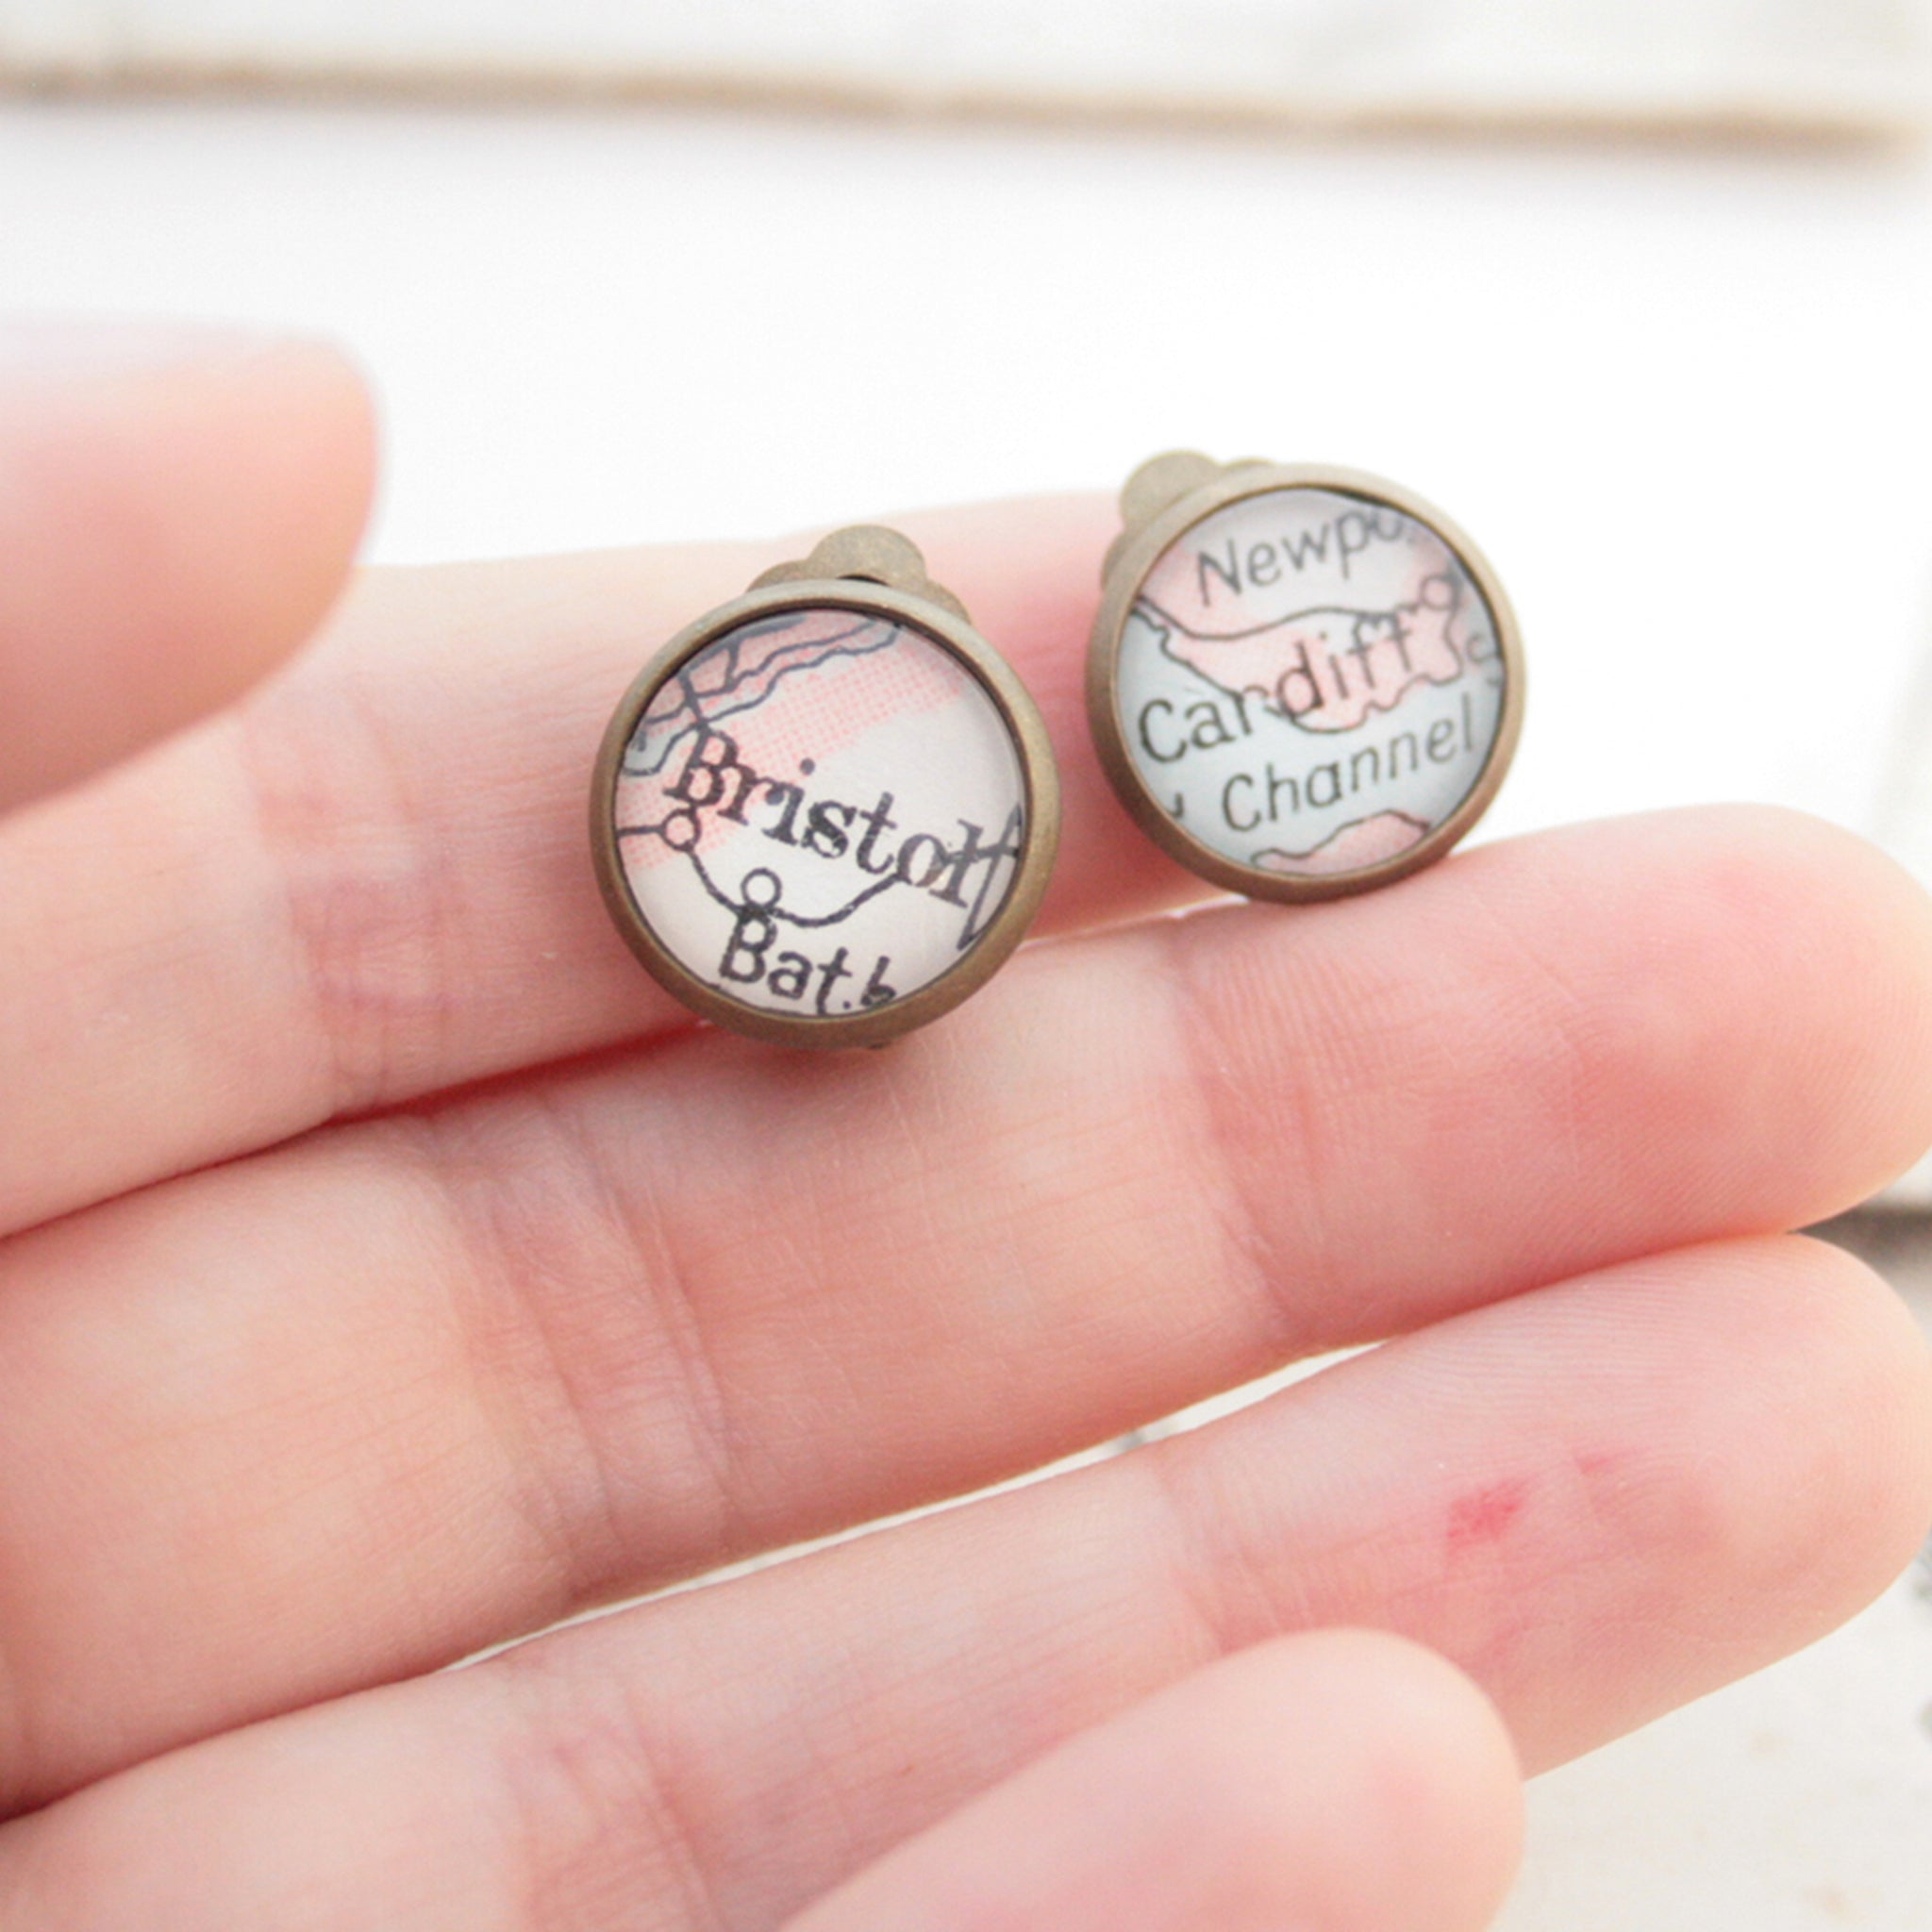 Hold in hands Custom clip on earrings in bronze tone featuring vintage maps